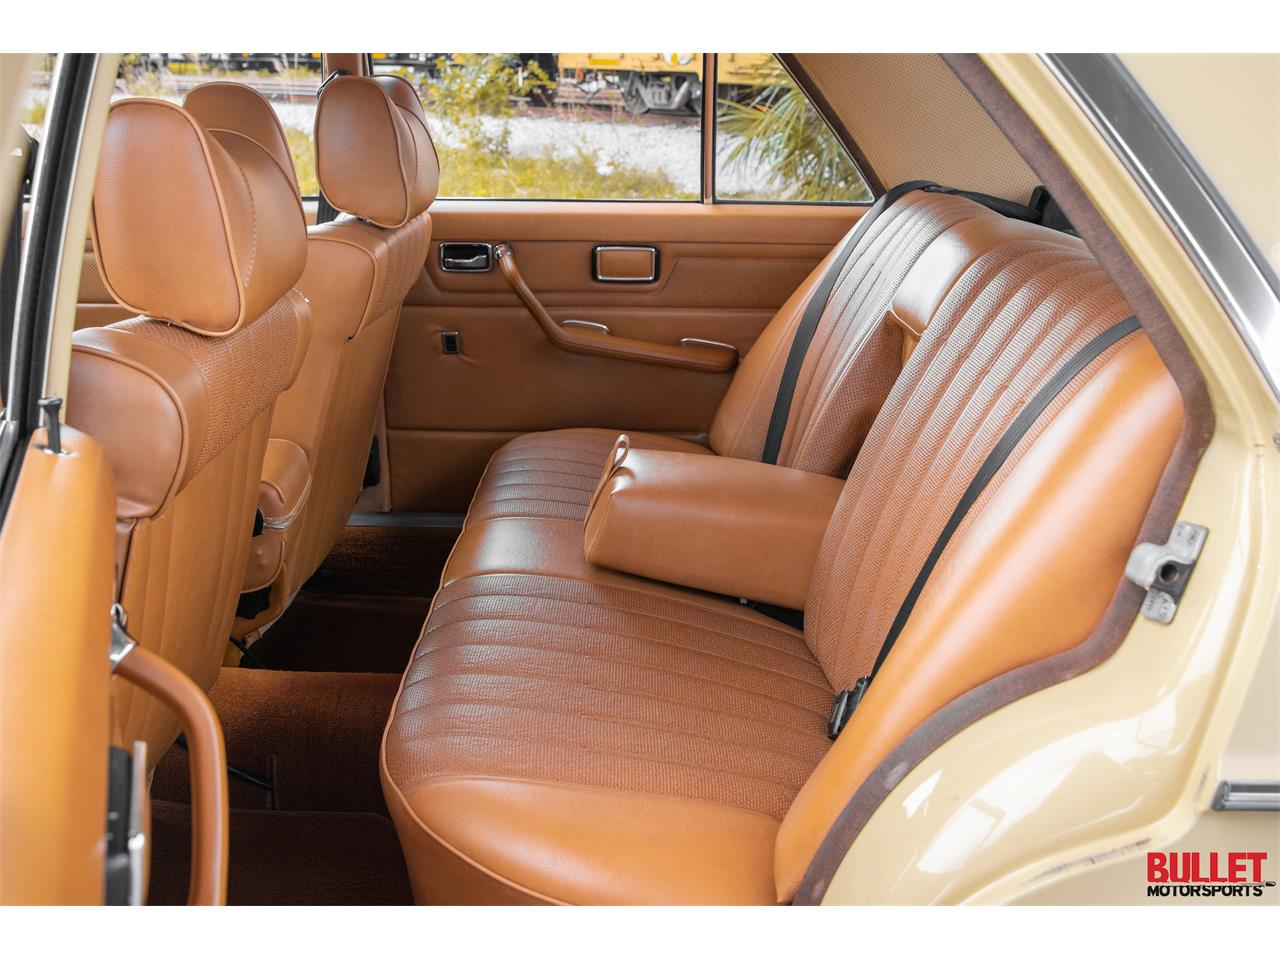 Large Picture of '76 Mercedes-Benz 300D located in Fort Lauderdale Florida - $9,000.00 Offered by Bullet Motorsports Inc - PXPA